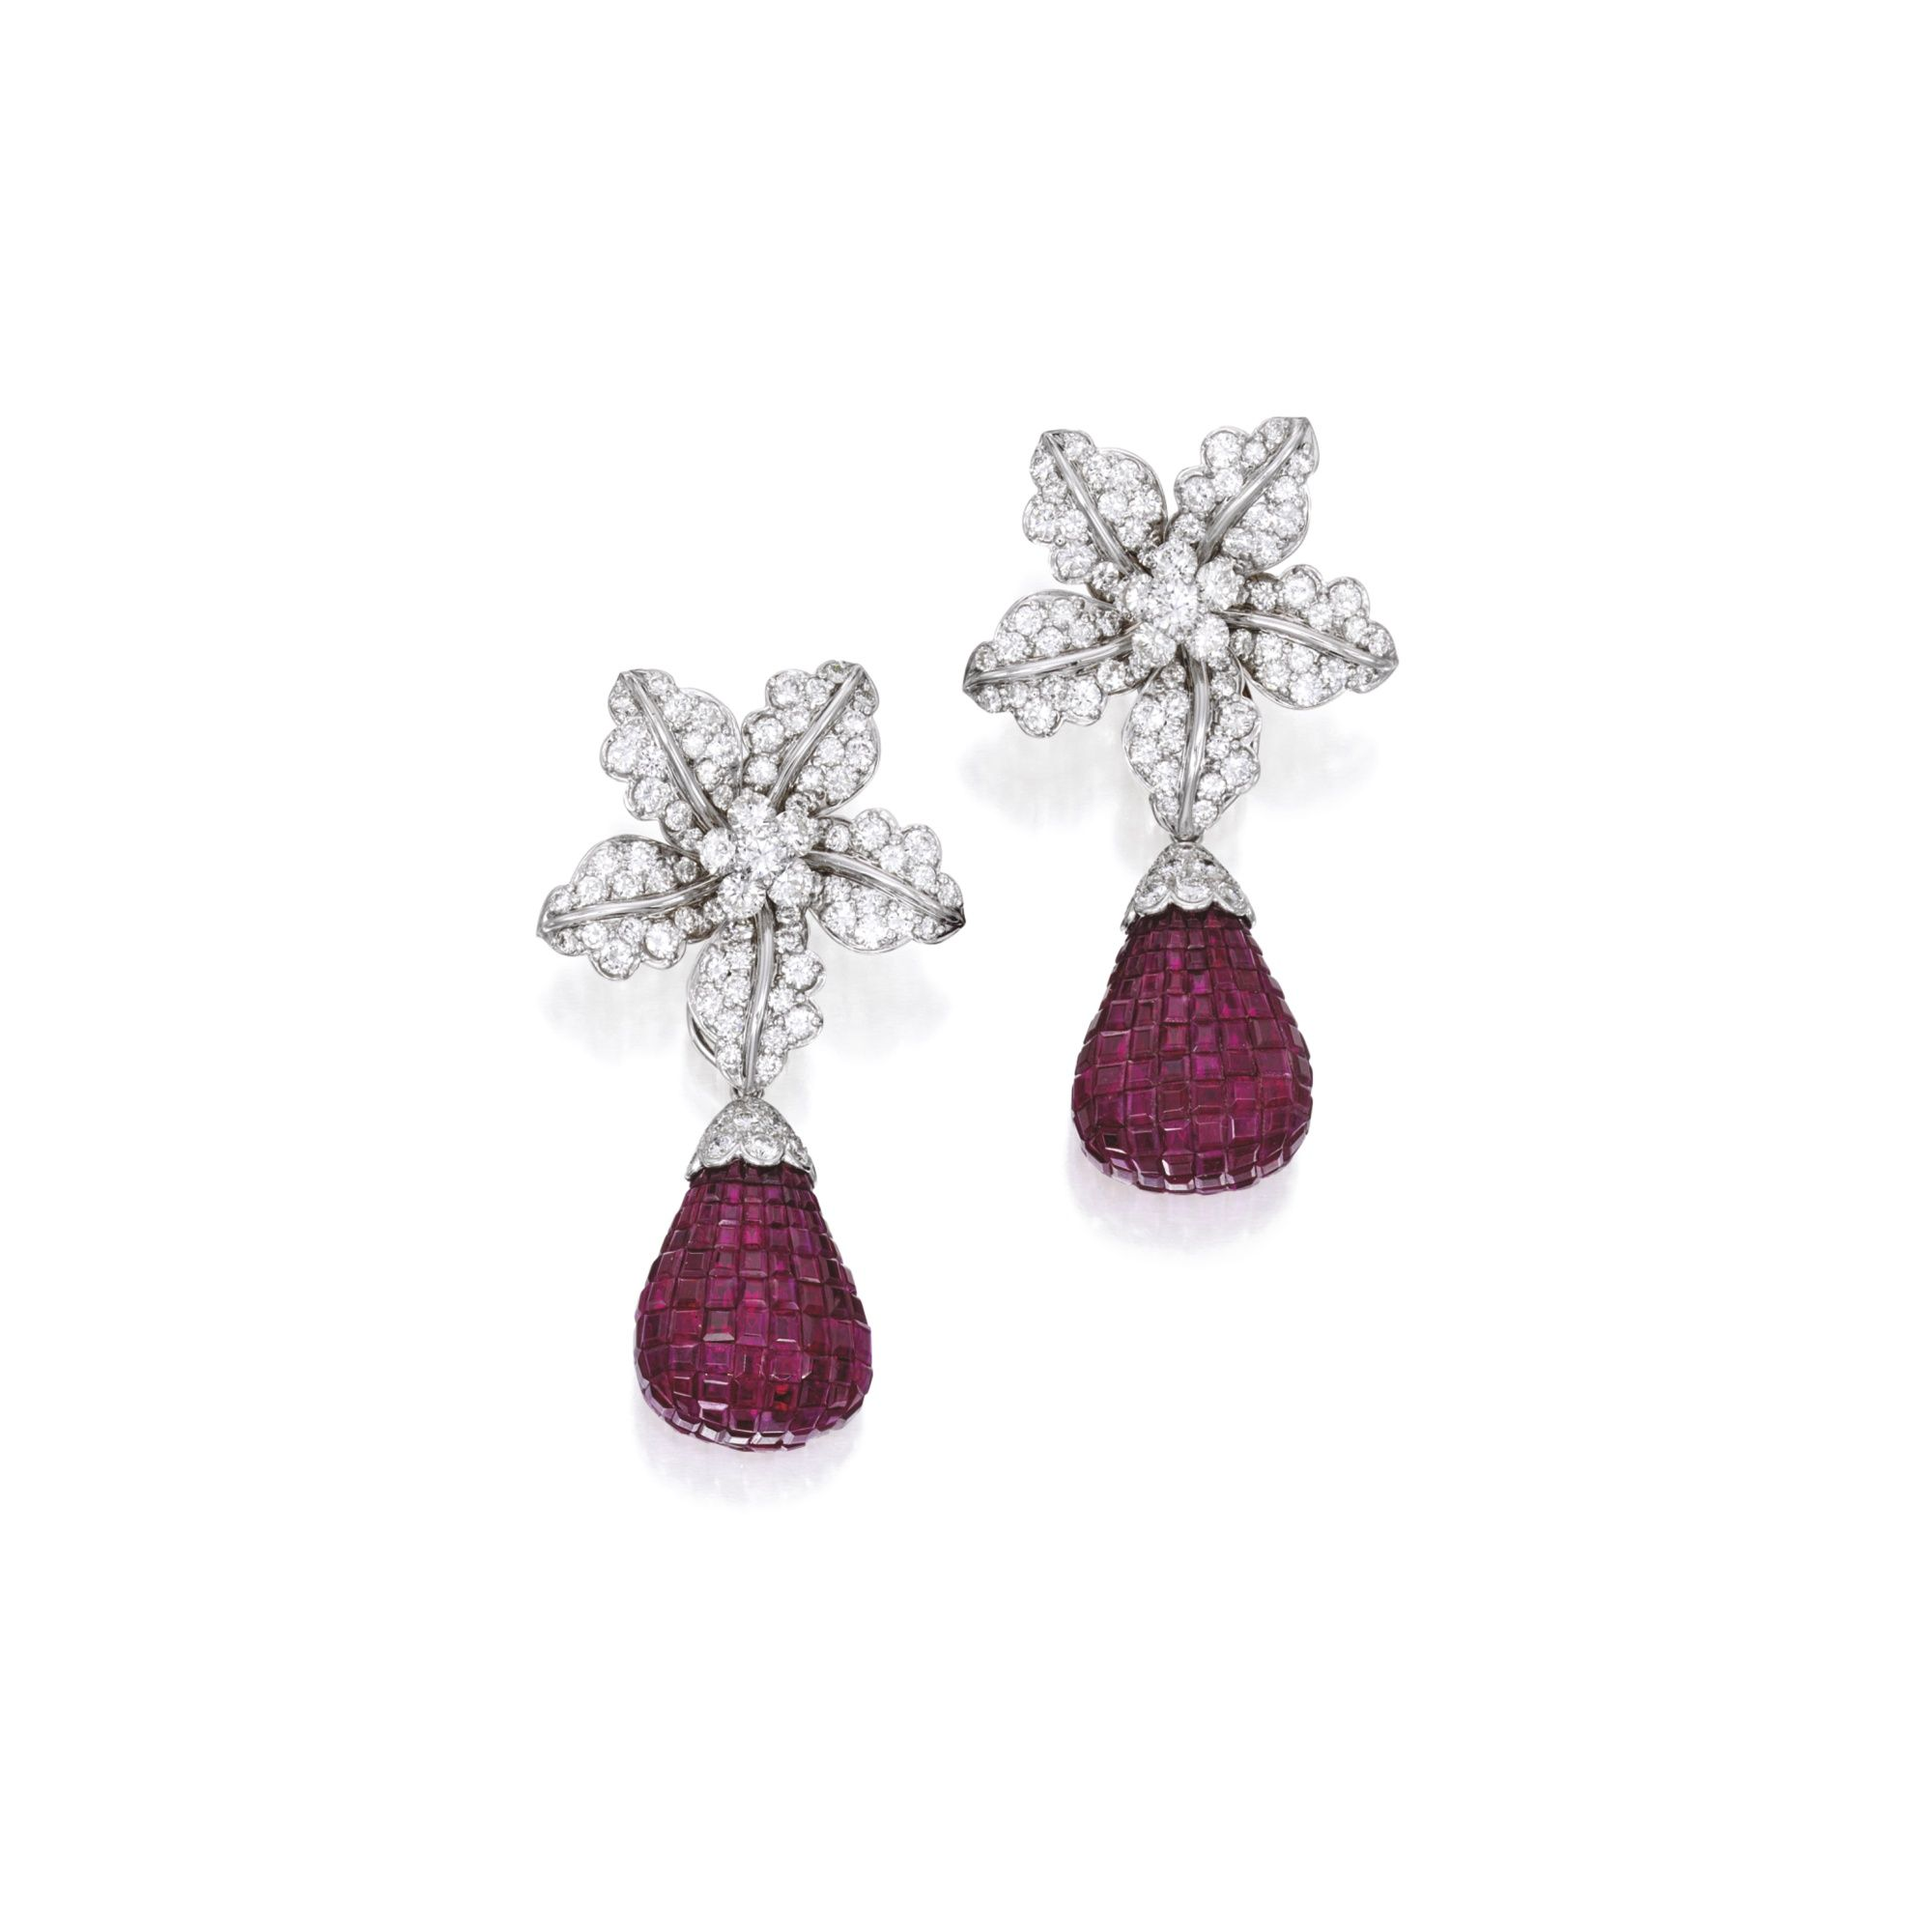 34c91ee6f Pair of 18 Karat White Gold, Diamond and Ruby Pendant-Earclips, Aletto  Brothers The tops of floral design with en tremblant centers